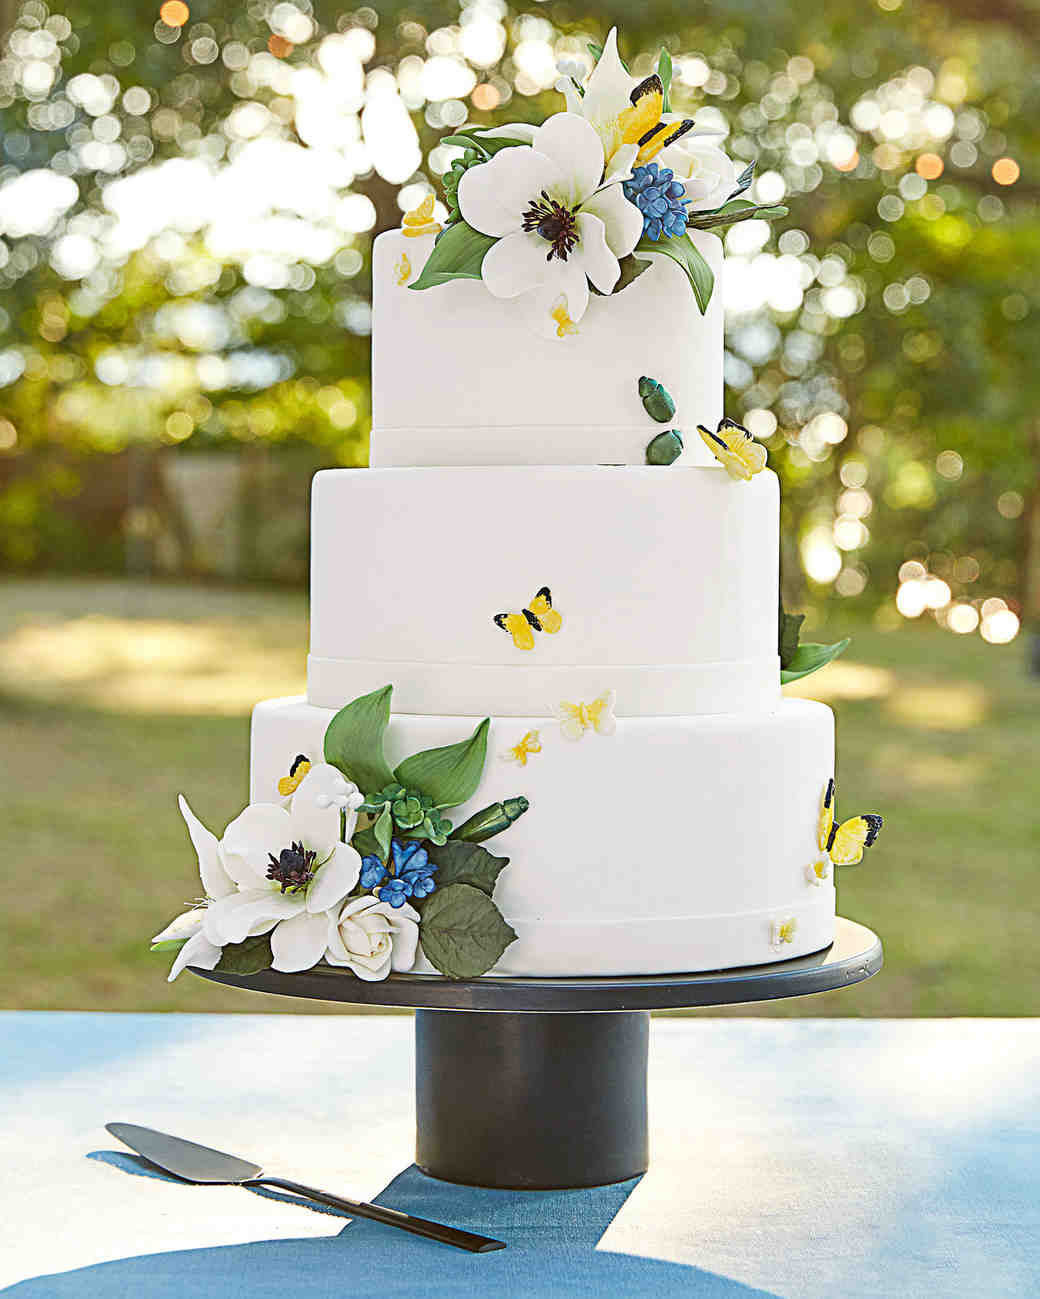 images Succulent Wedding Cakes: A Hot Wedding Trend